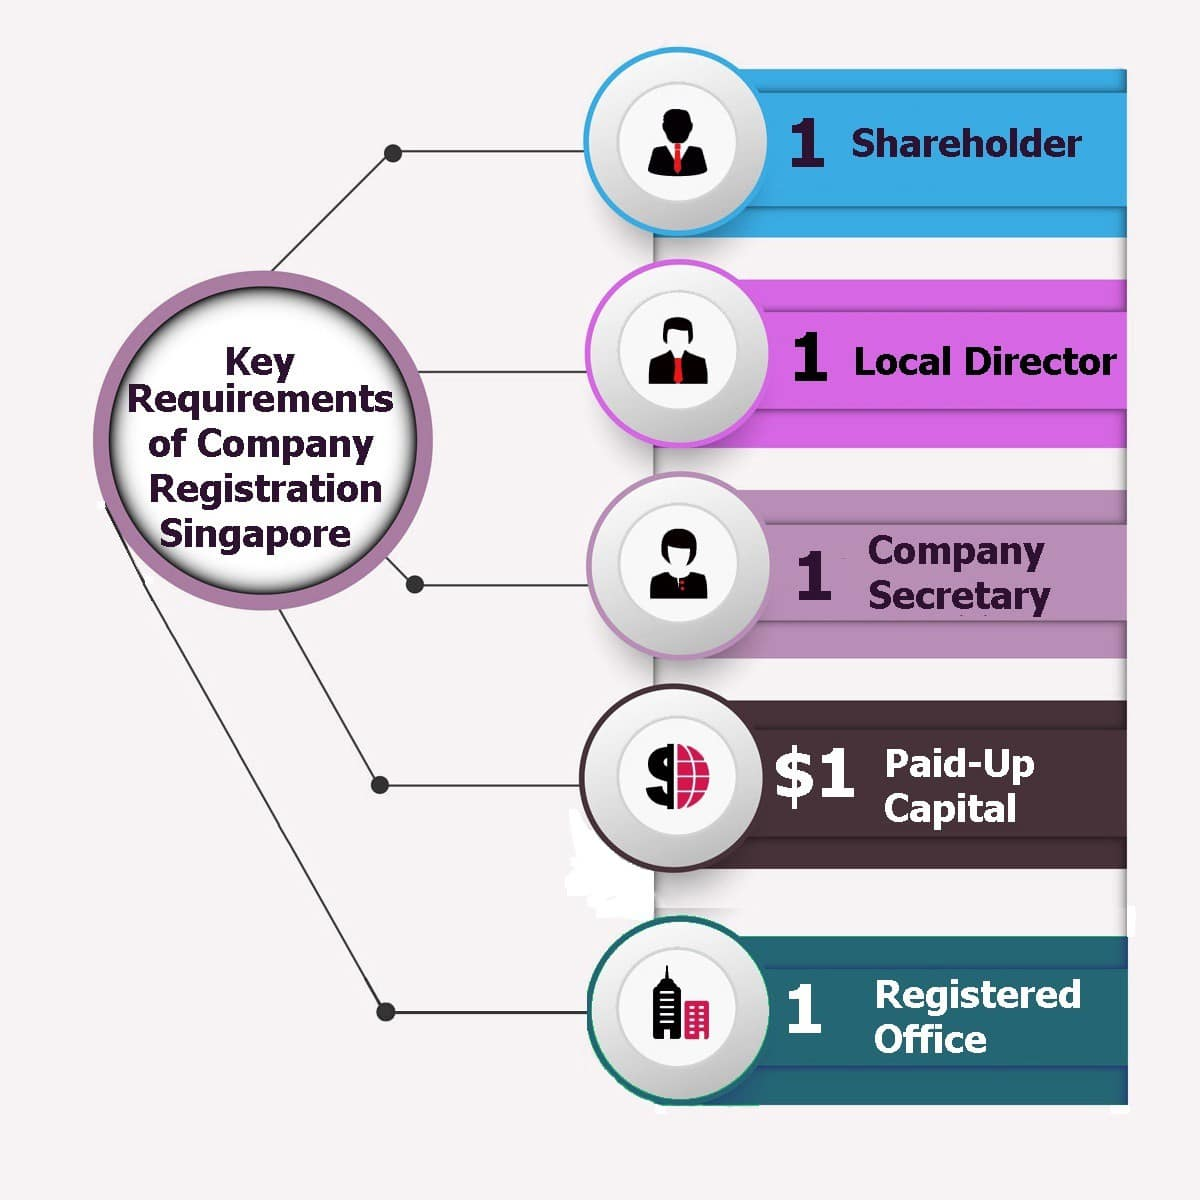 Key Requirements of Business Registration in Singapore